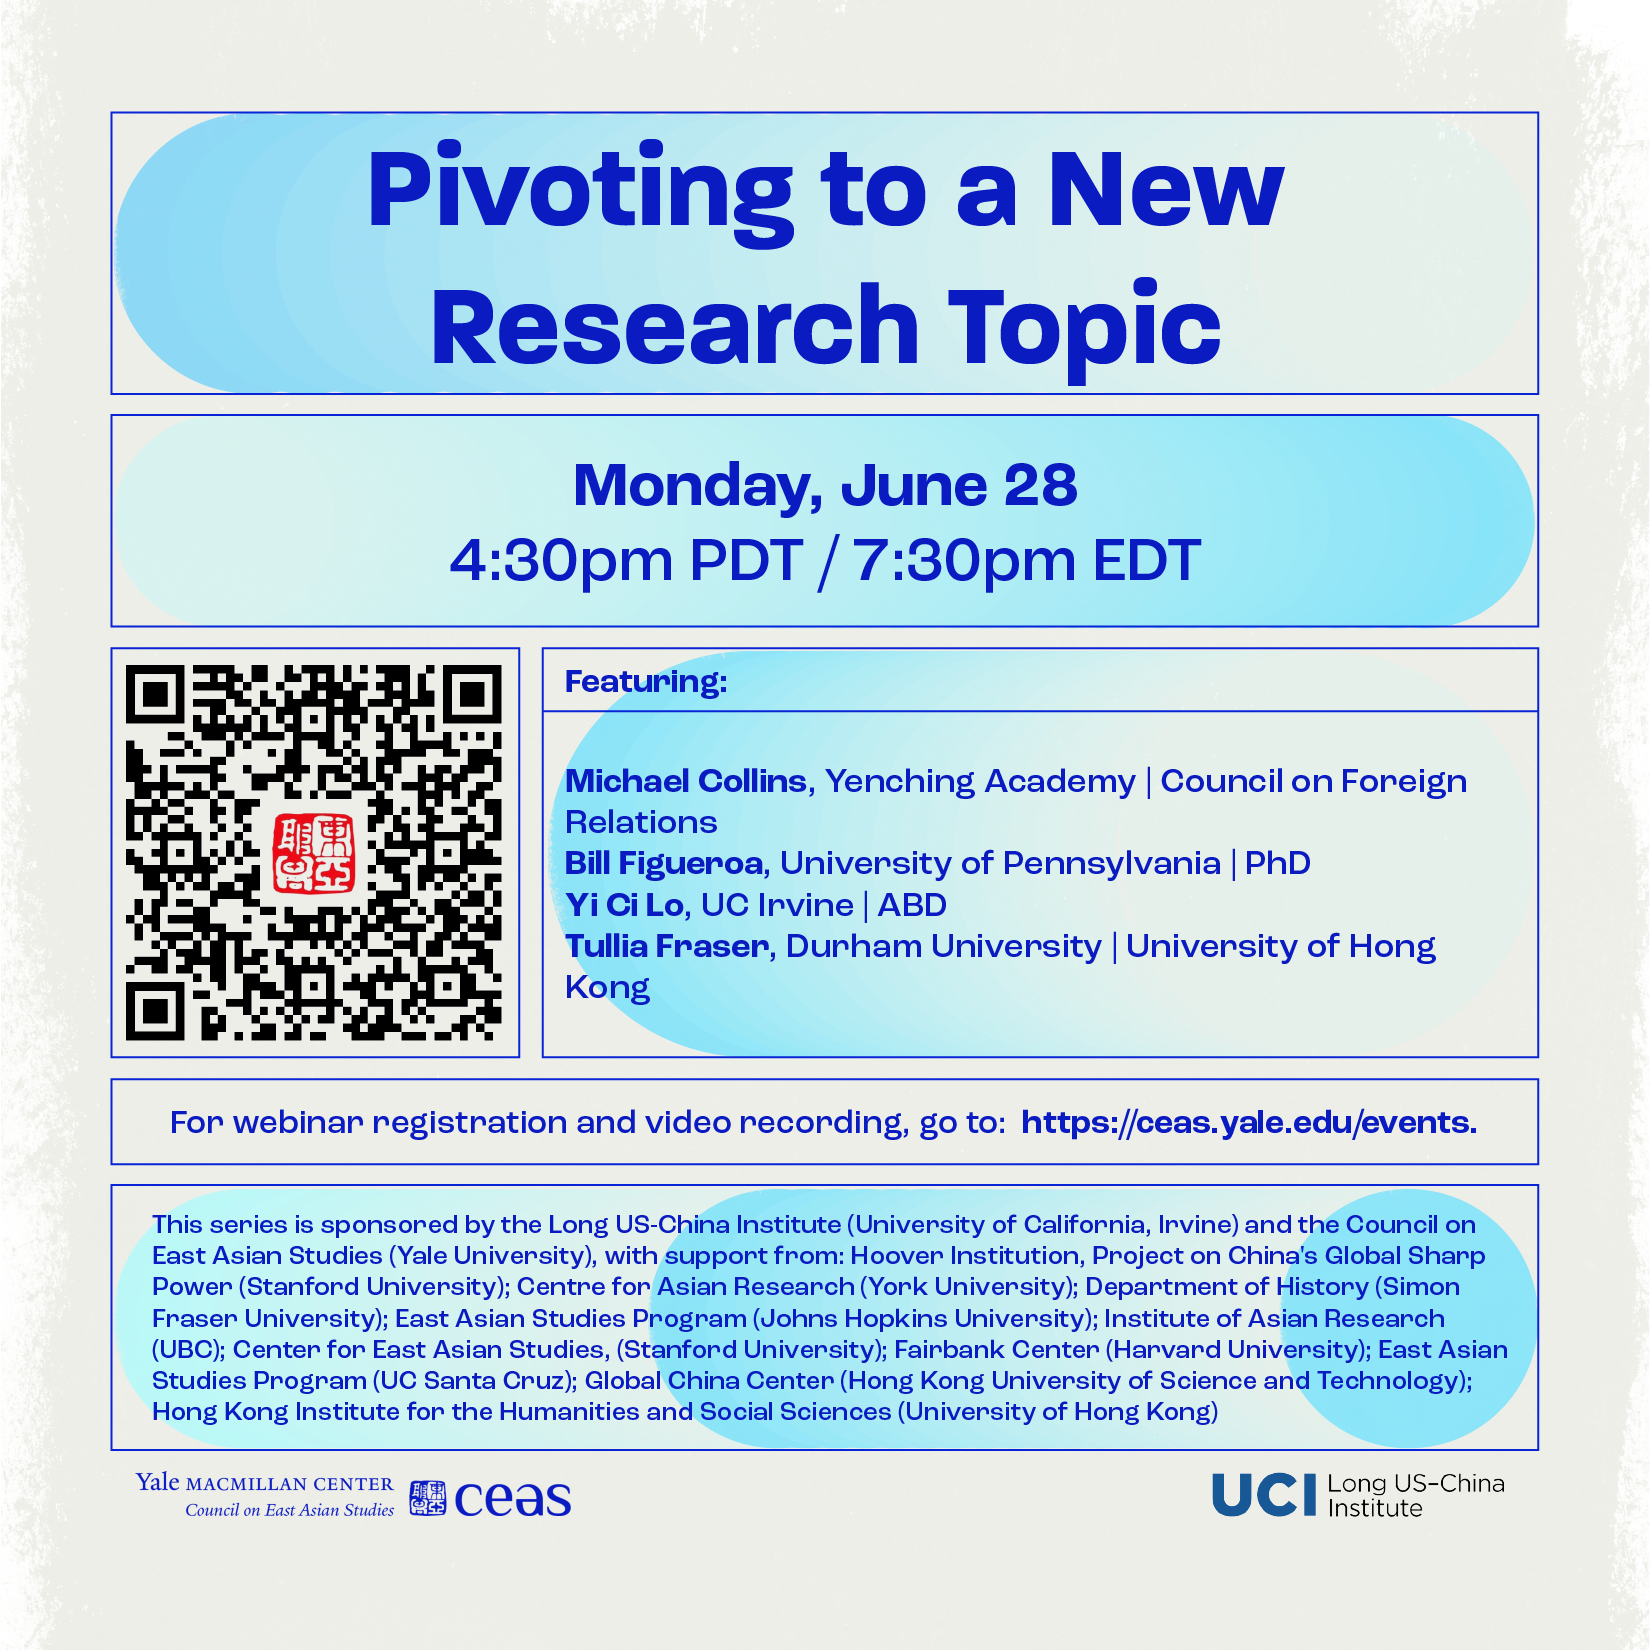 Pivoting to a New Research Topic